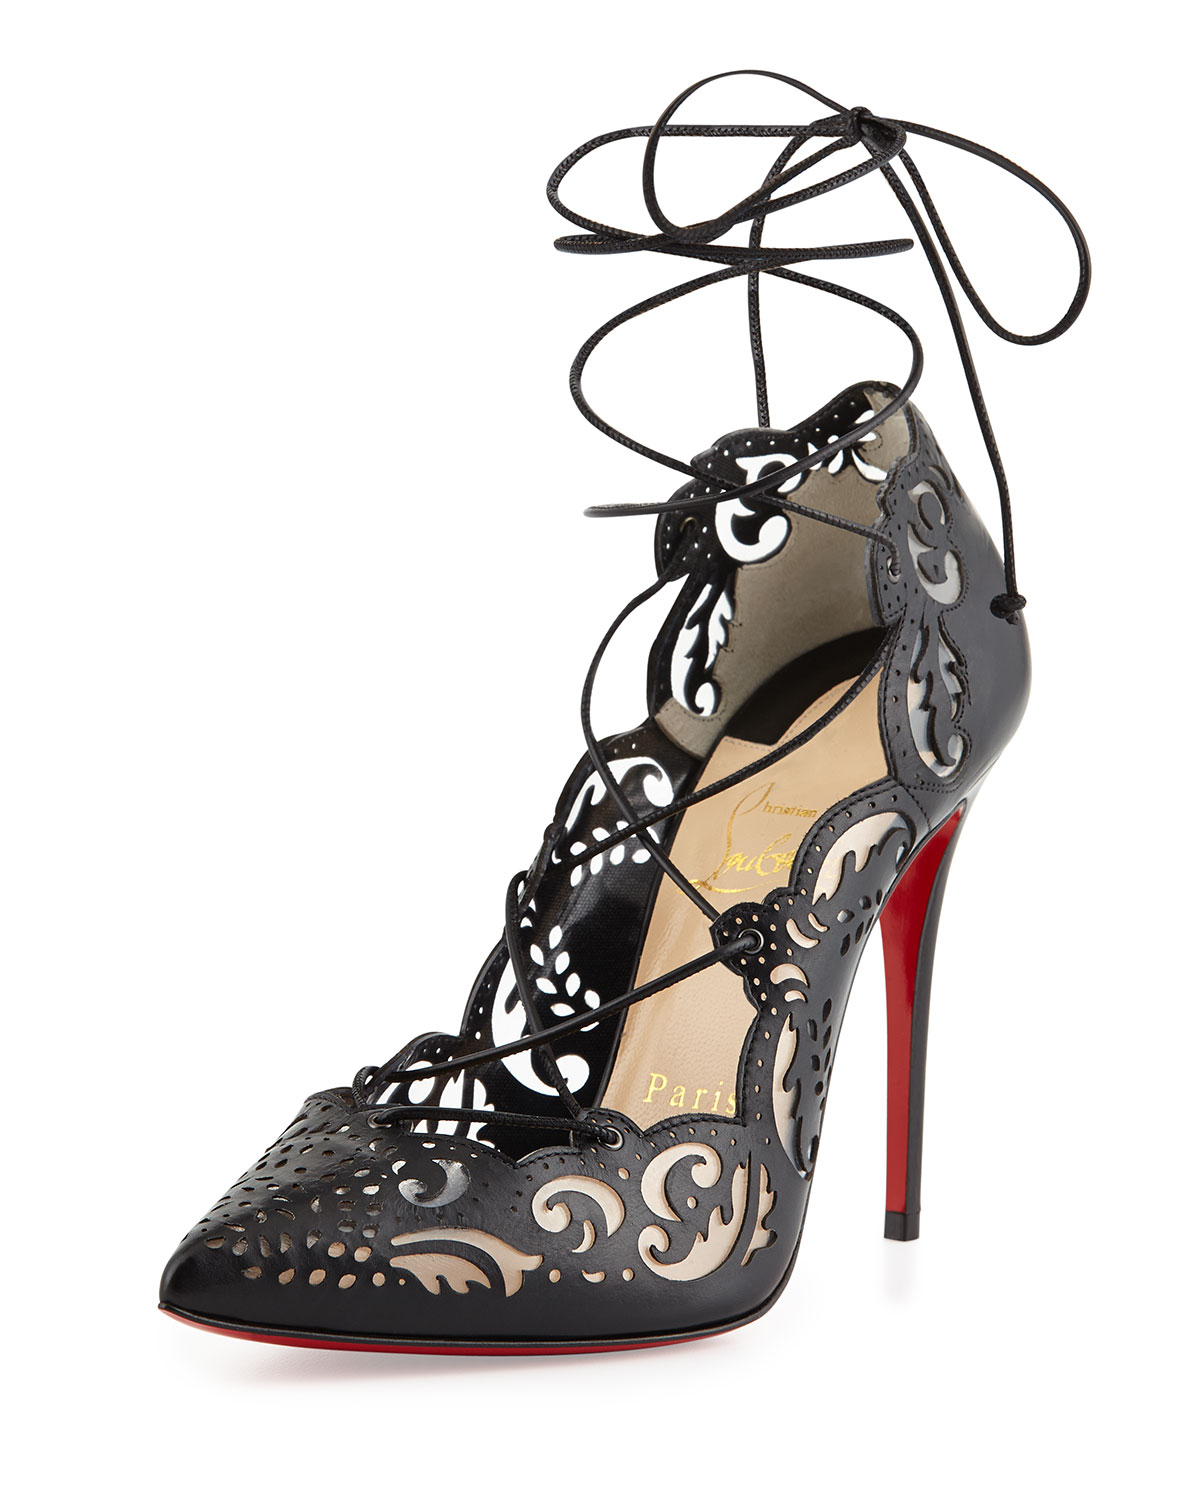 e4028fd37189 Lyst - Christian Louboutin Impera Laceup Lasercut Red Sole Pump Black in  Black